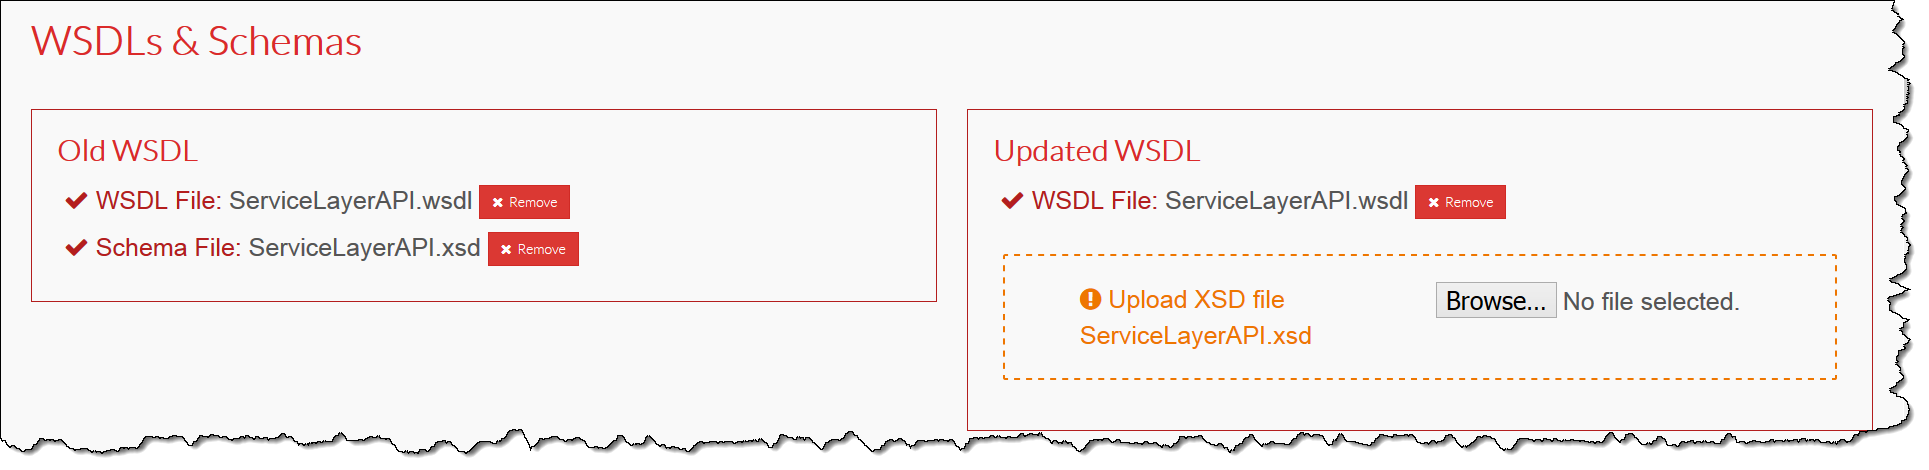 XML/WSDL Comparison tool - Stack Overflow